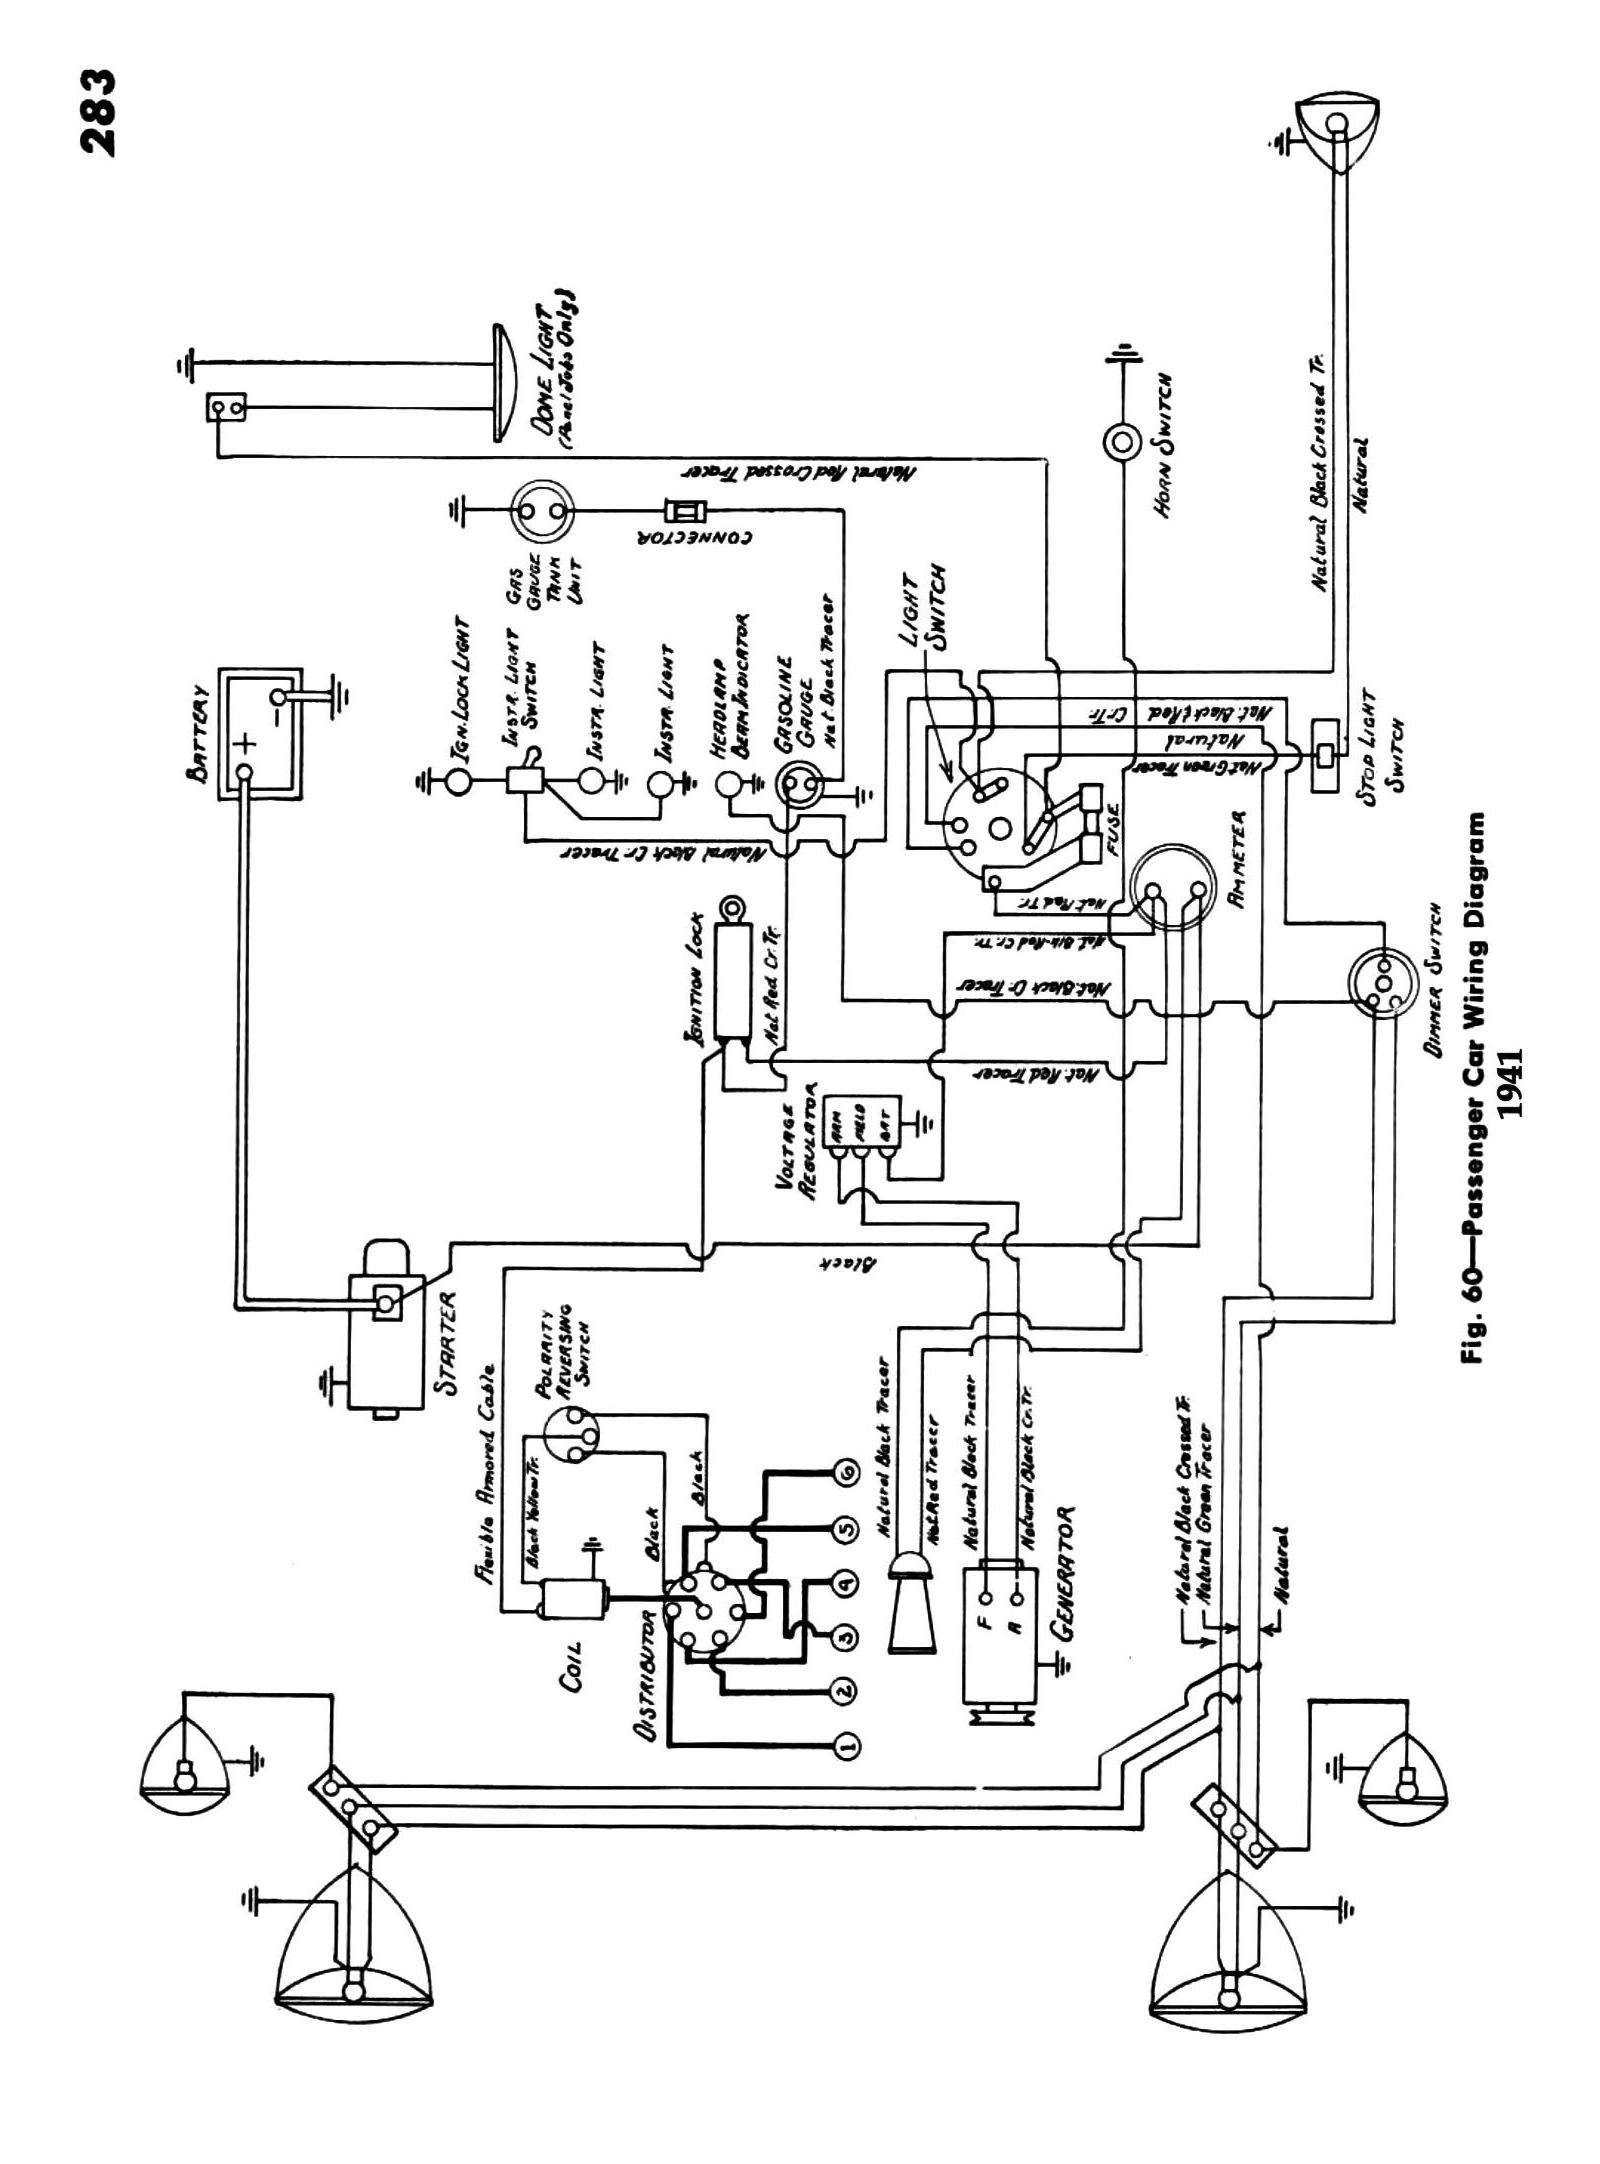 hight resolution of chevy wiring diagrams voltage coil circuit diagram for the 1947 chevrolet trucks